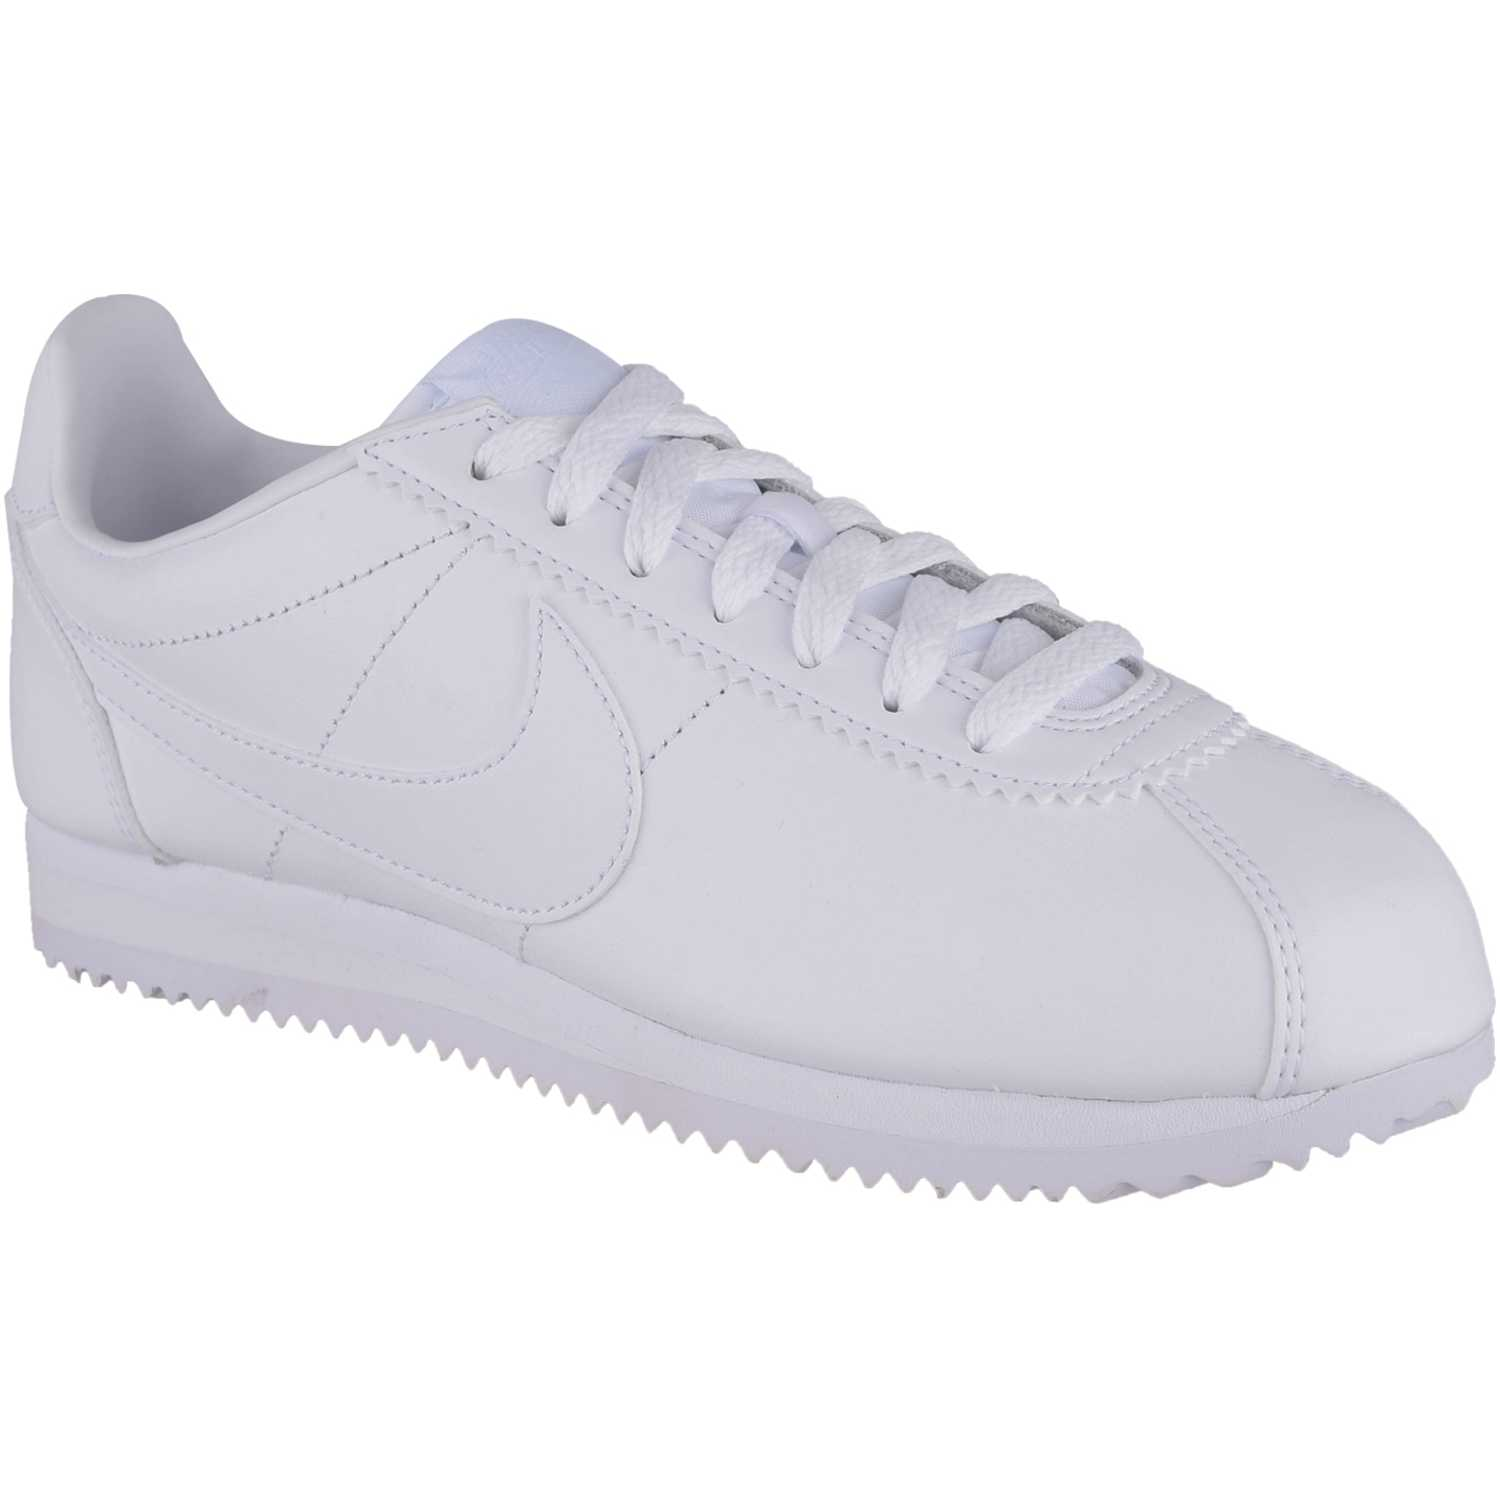 Nike Wmns Classic Cortez Leather BLANCO / BLANCO Walking